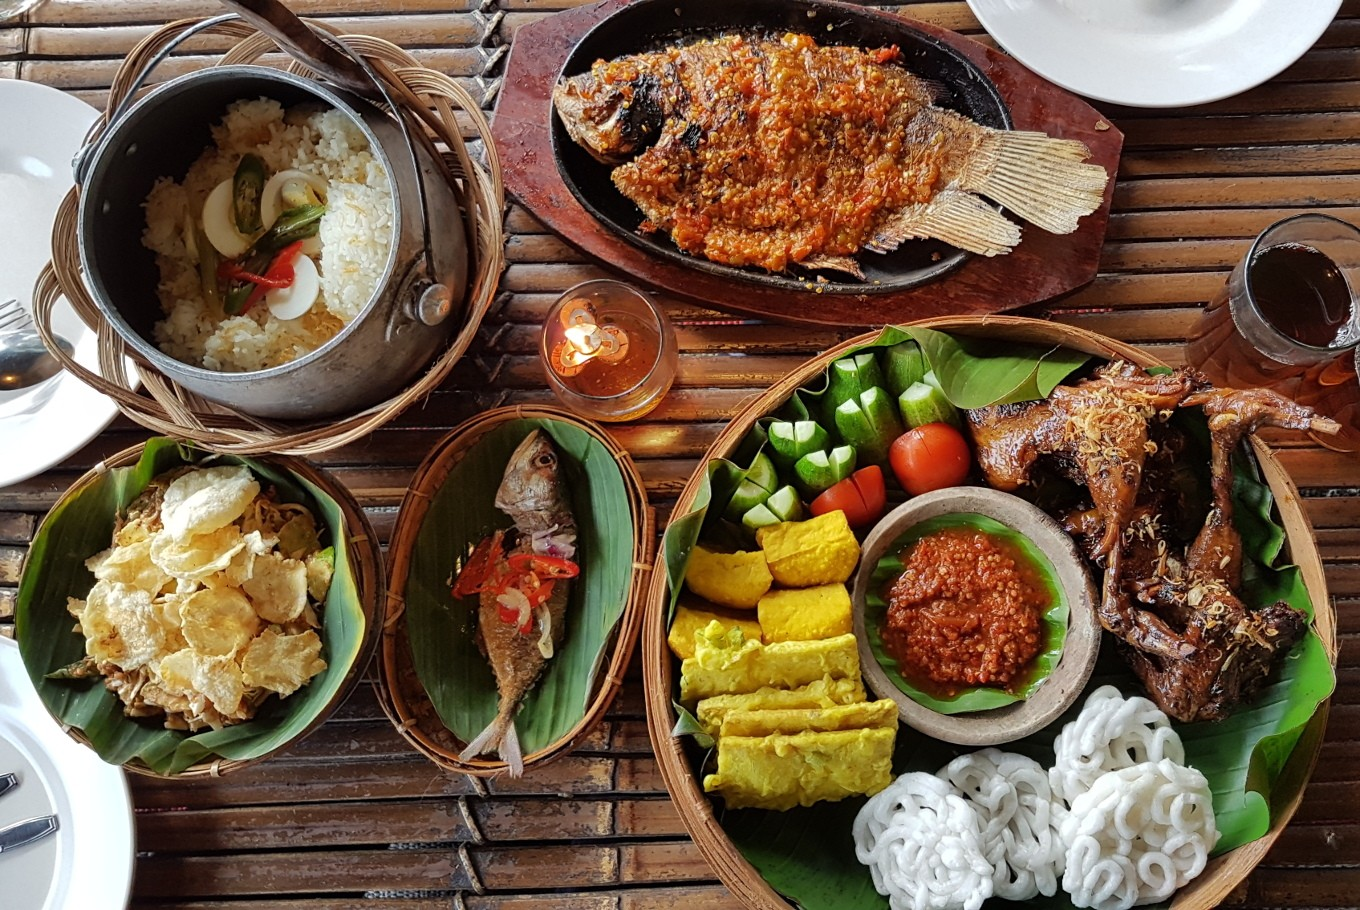 Kaesang Pangarep promotes local dishes through mobile app